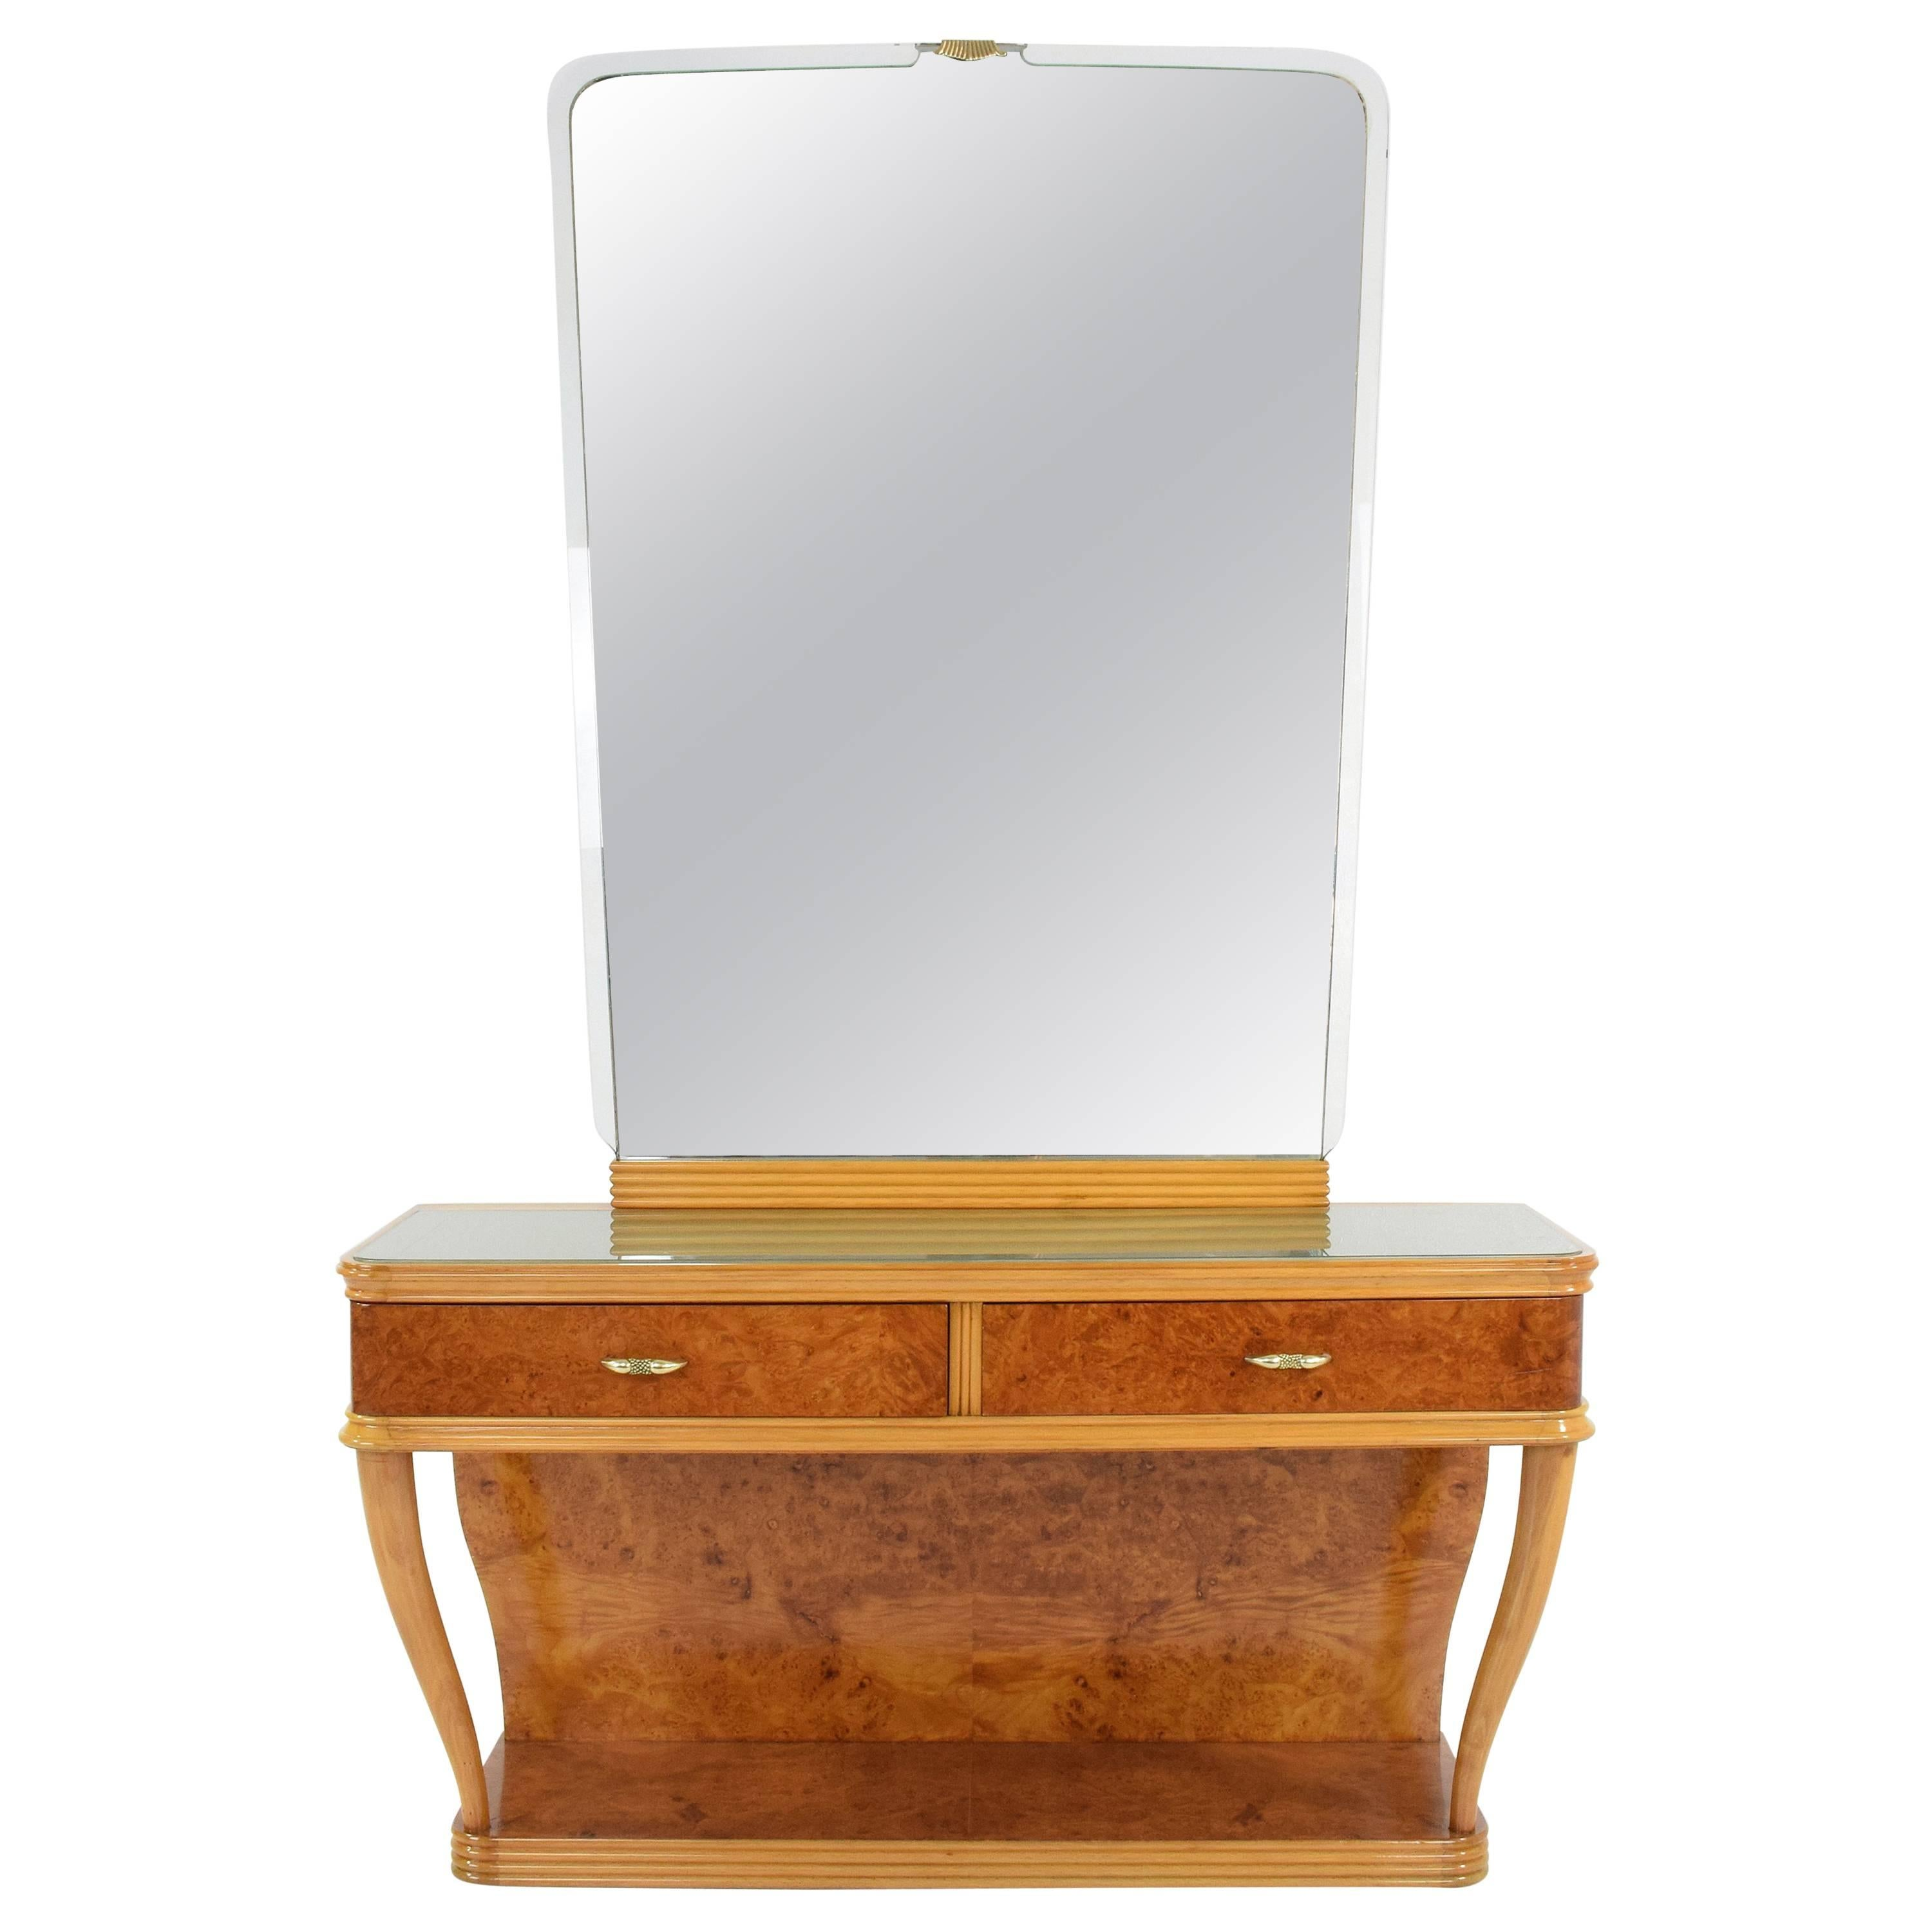 20th Century Italian Vintage Dressing Table and Mirror, 1950s